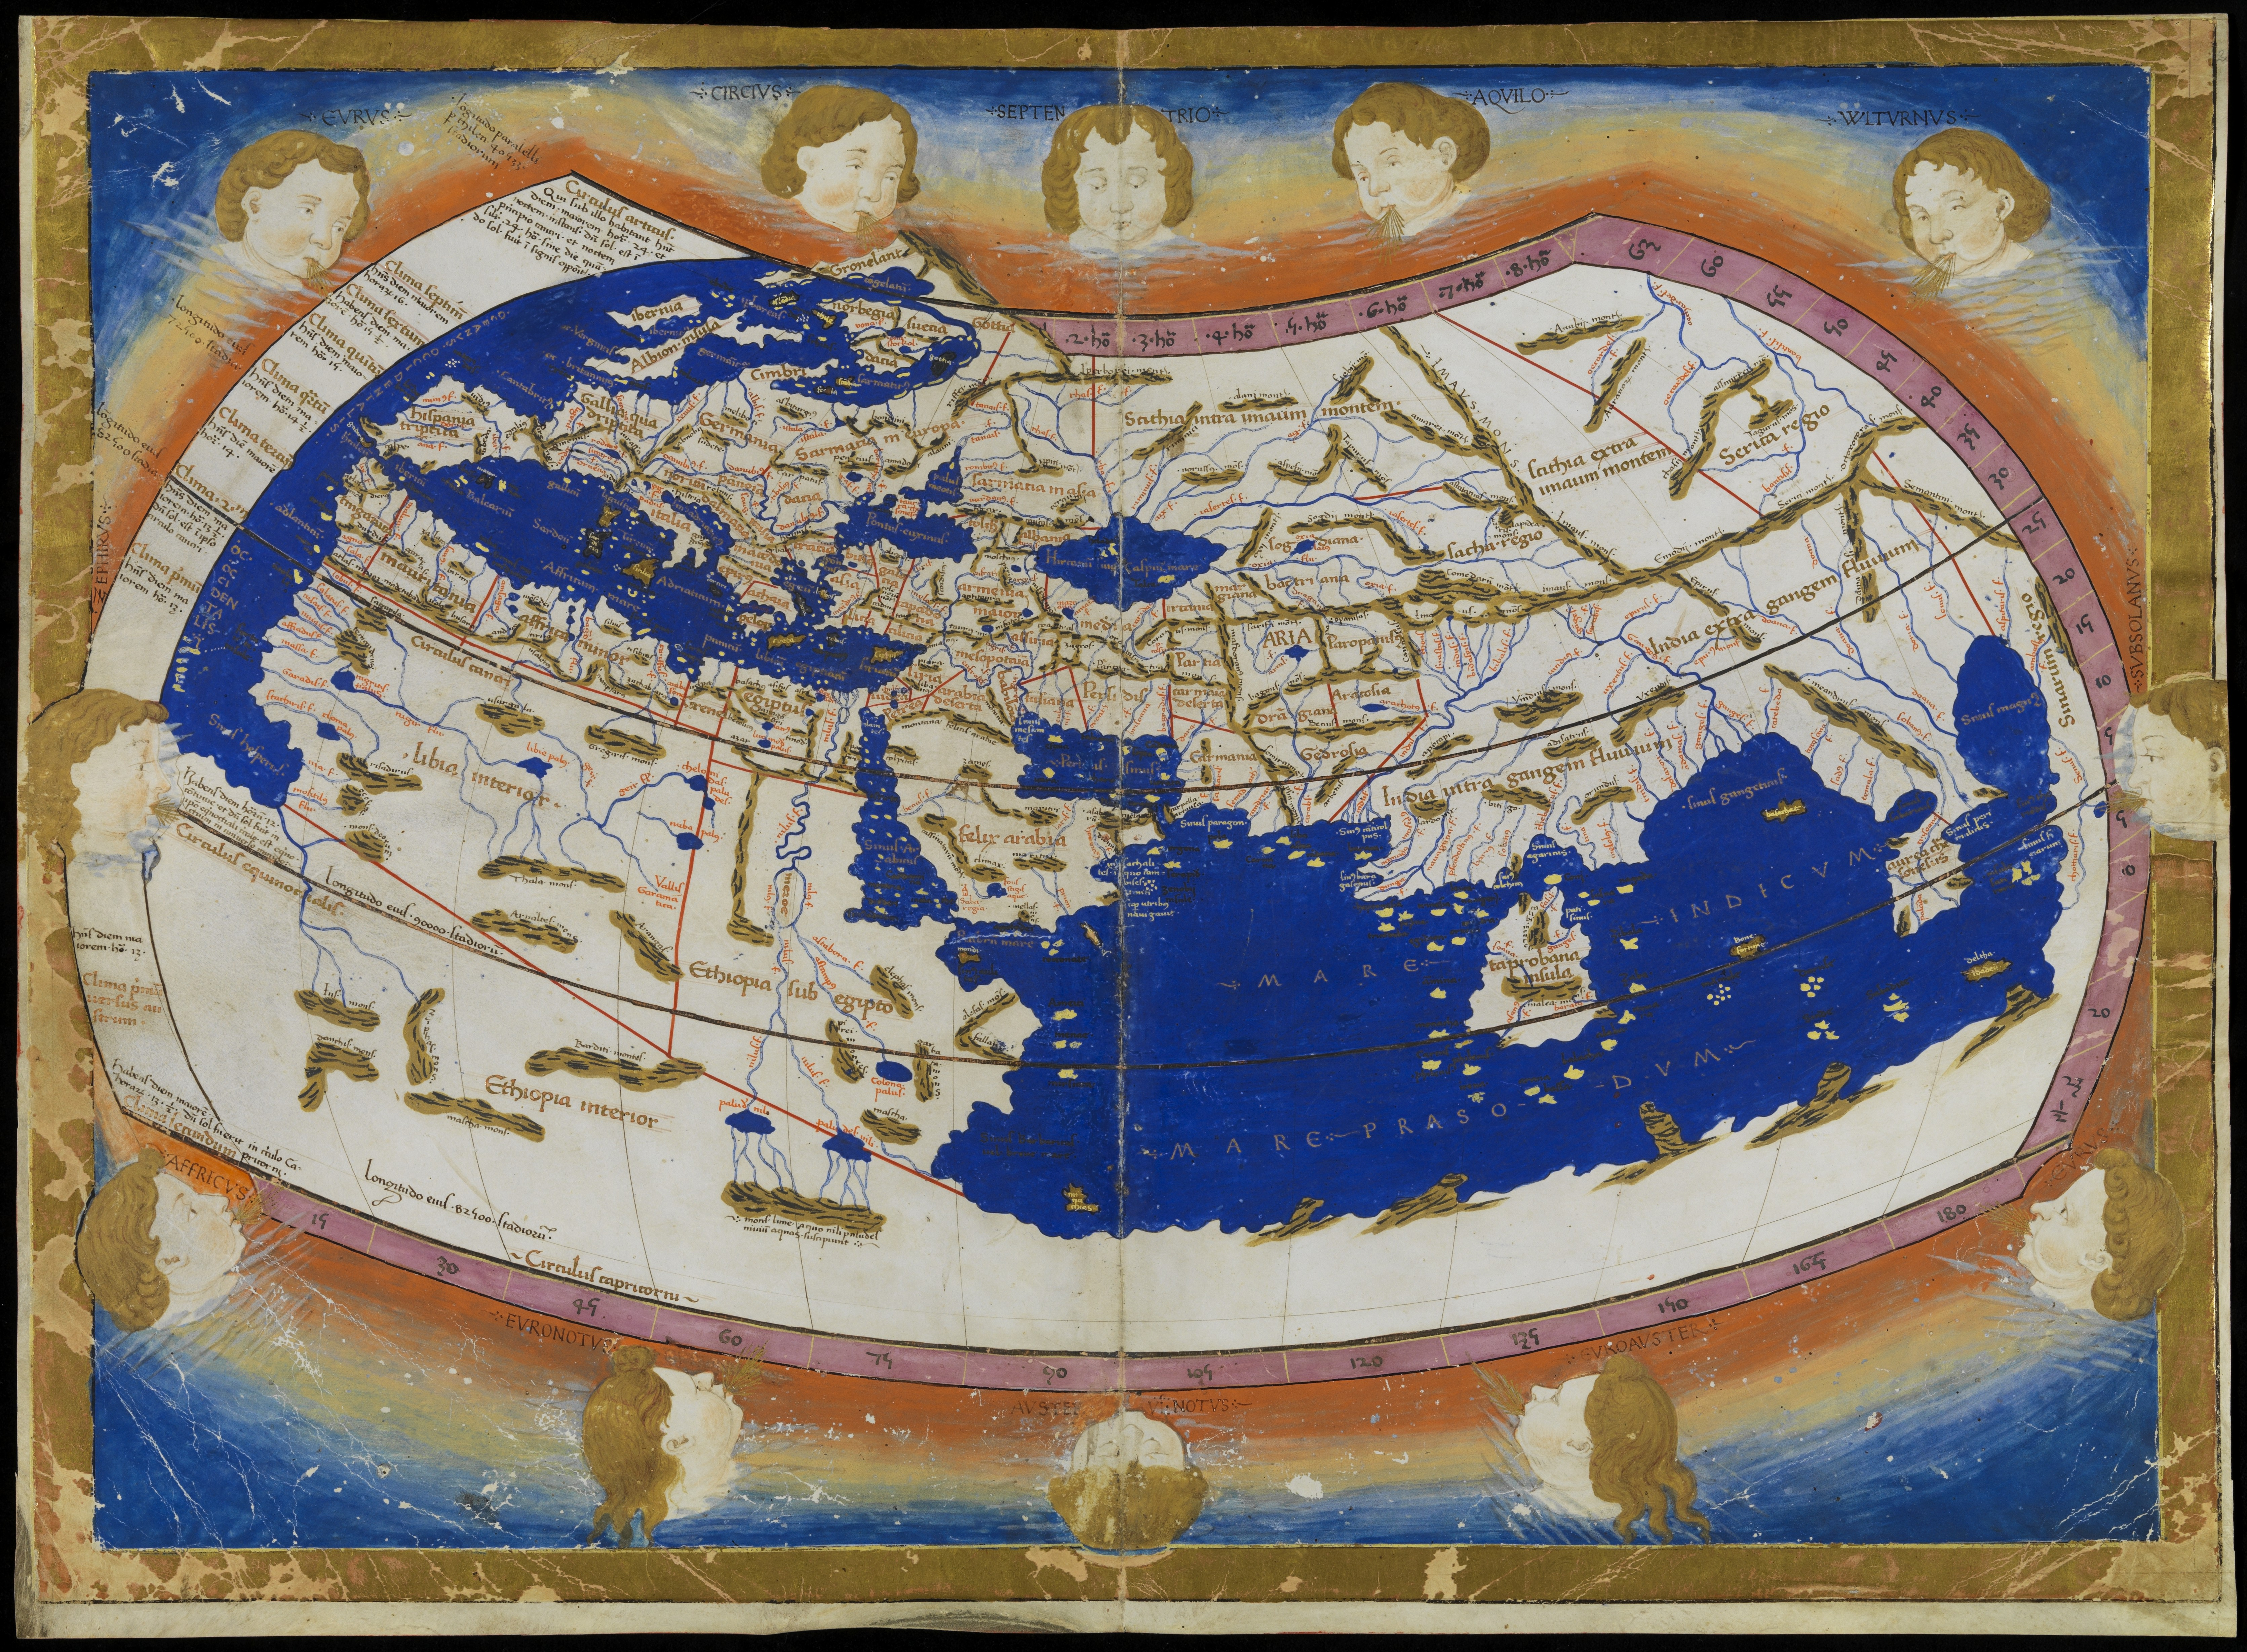 old world maps images with Map Of The World By Claudius Ptolemy 1st C Ad on Beautiful Hand Drawn Maps Tumblr Dennys Hess furthermore Wel arte Vintage V37800 together with Tallinn likewise Ground Texture Seamless 17330 in addition Kotor.